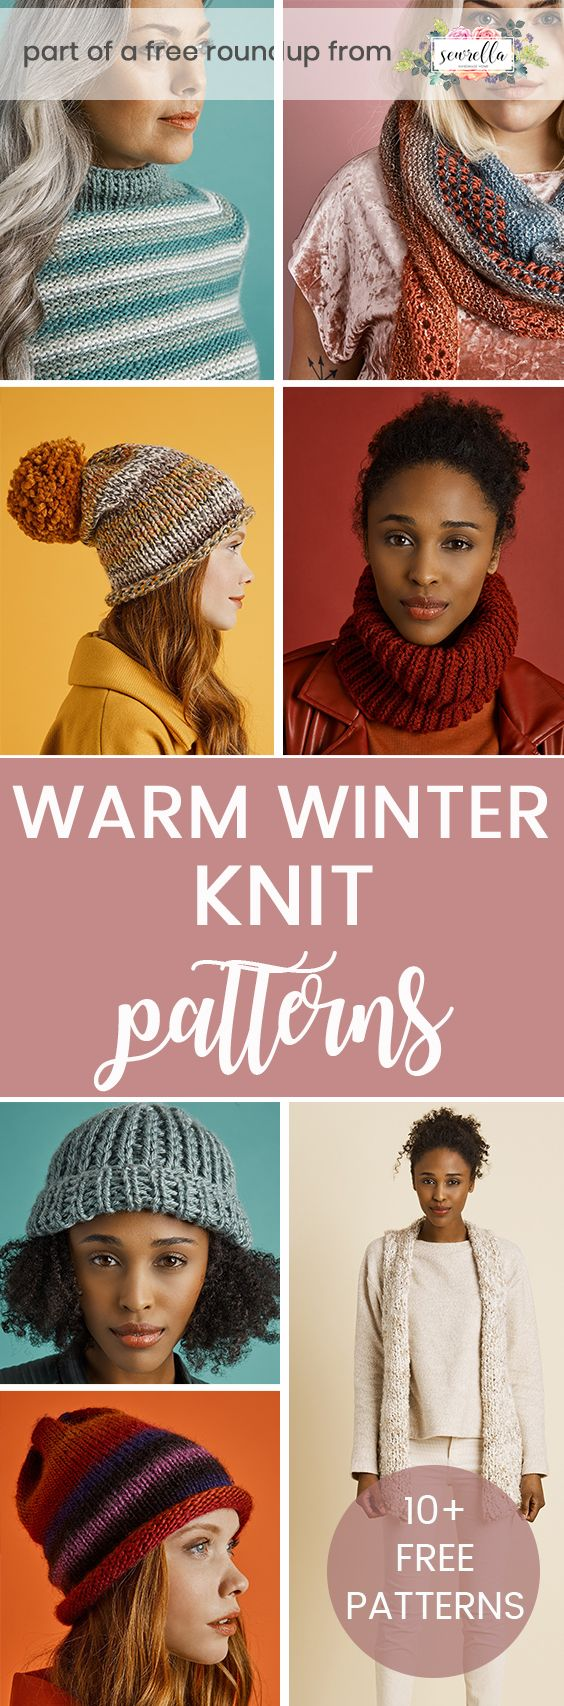 Knit these warm winter hats, wraps, sweaters, and cowls from my free pattern roundup!